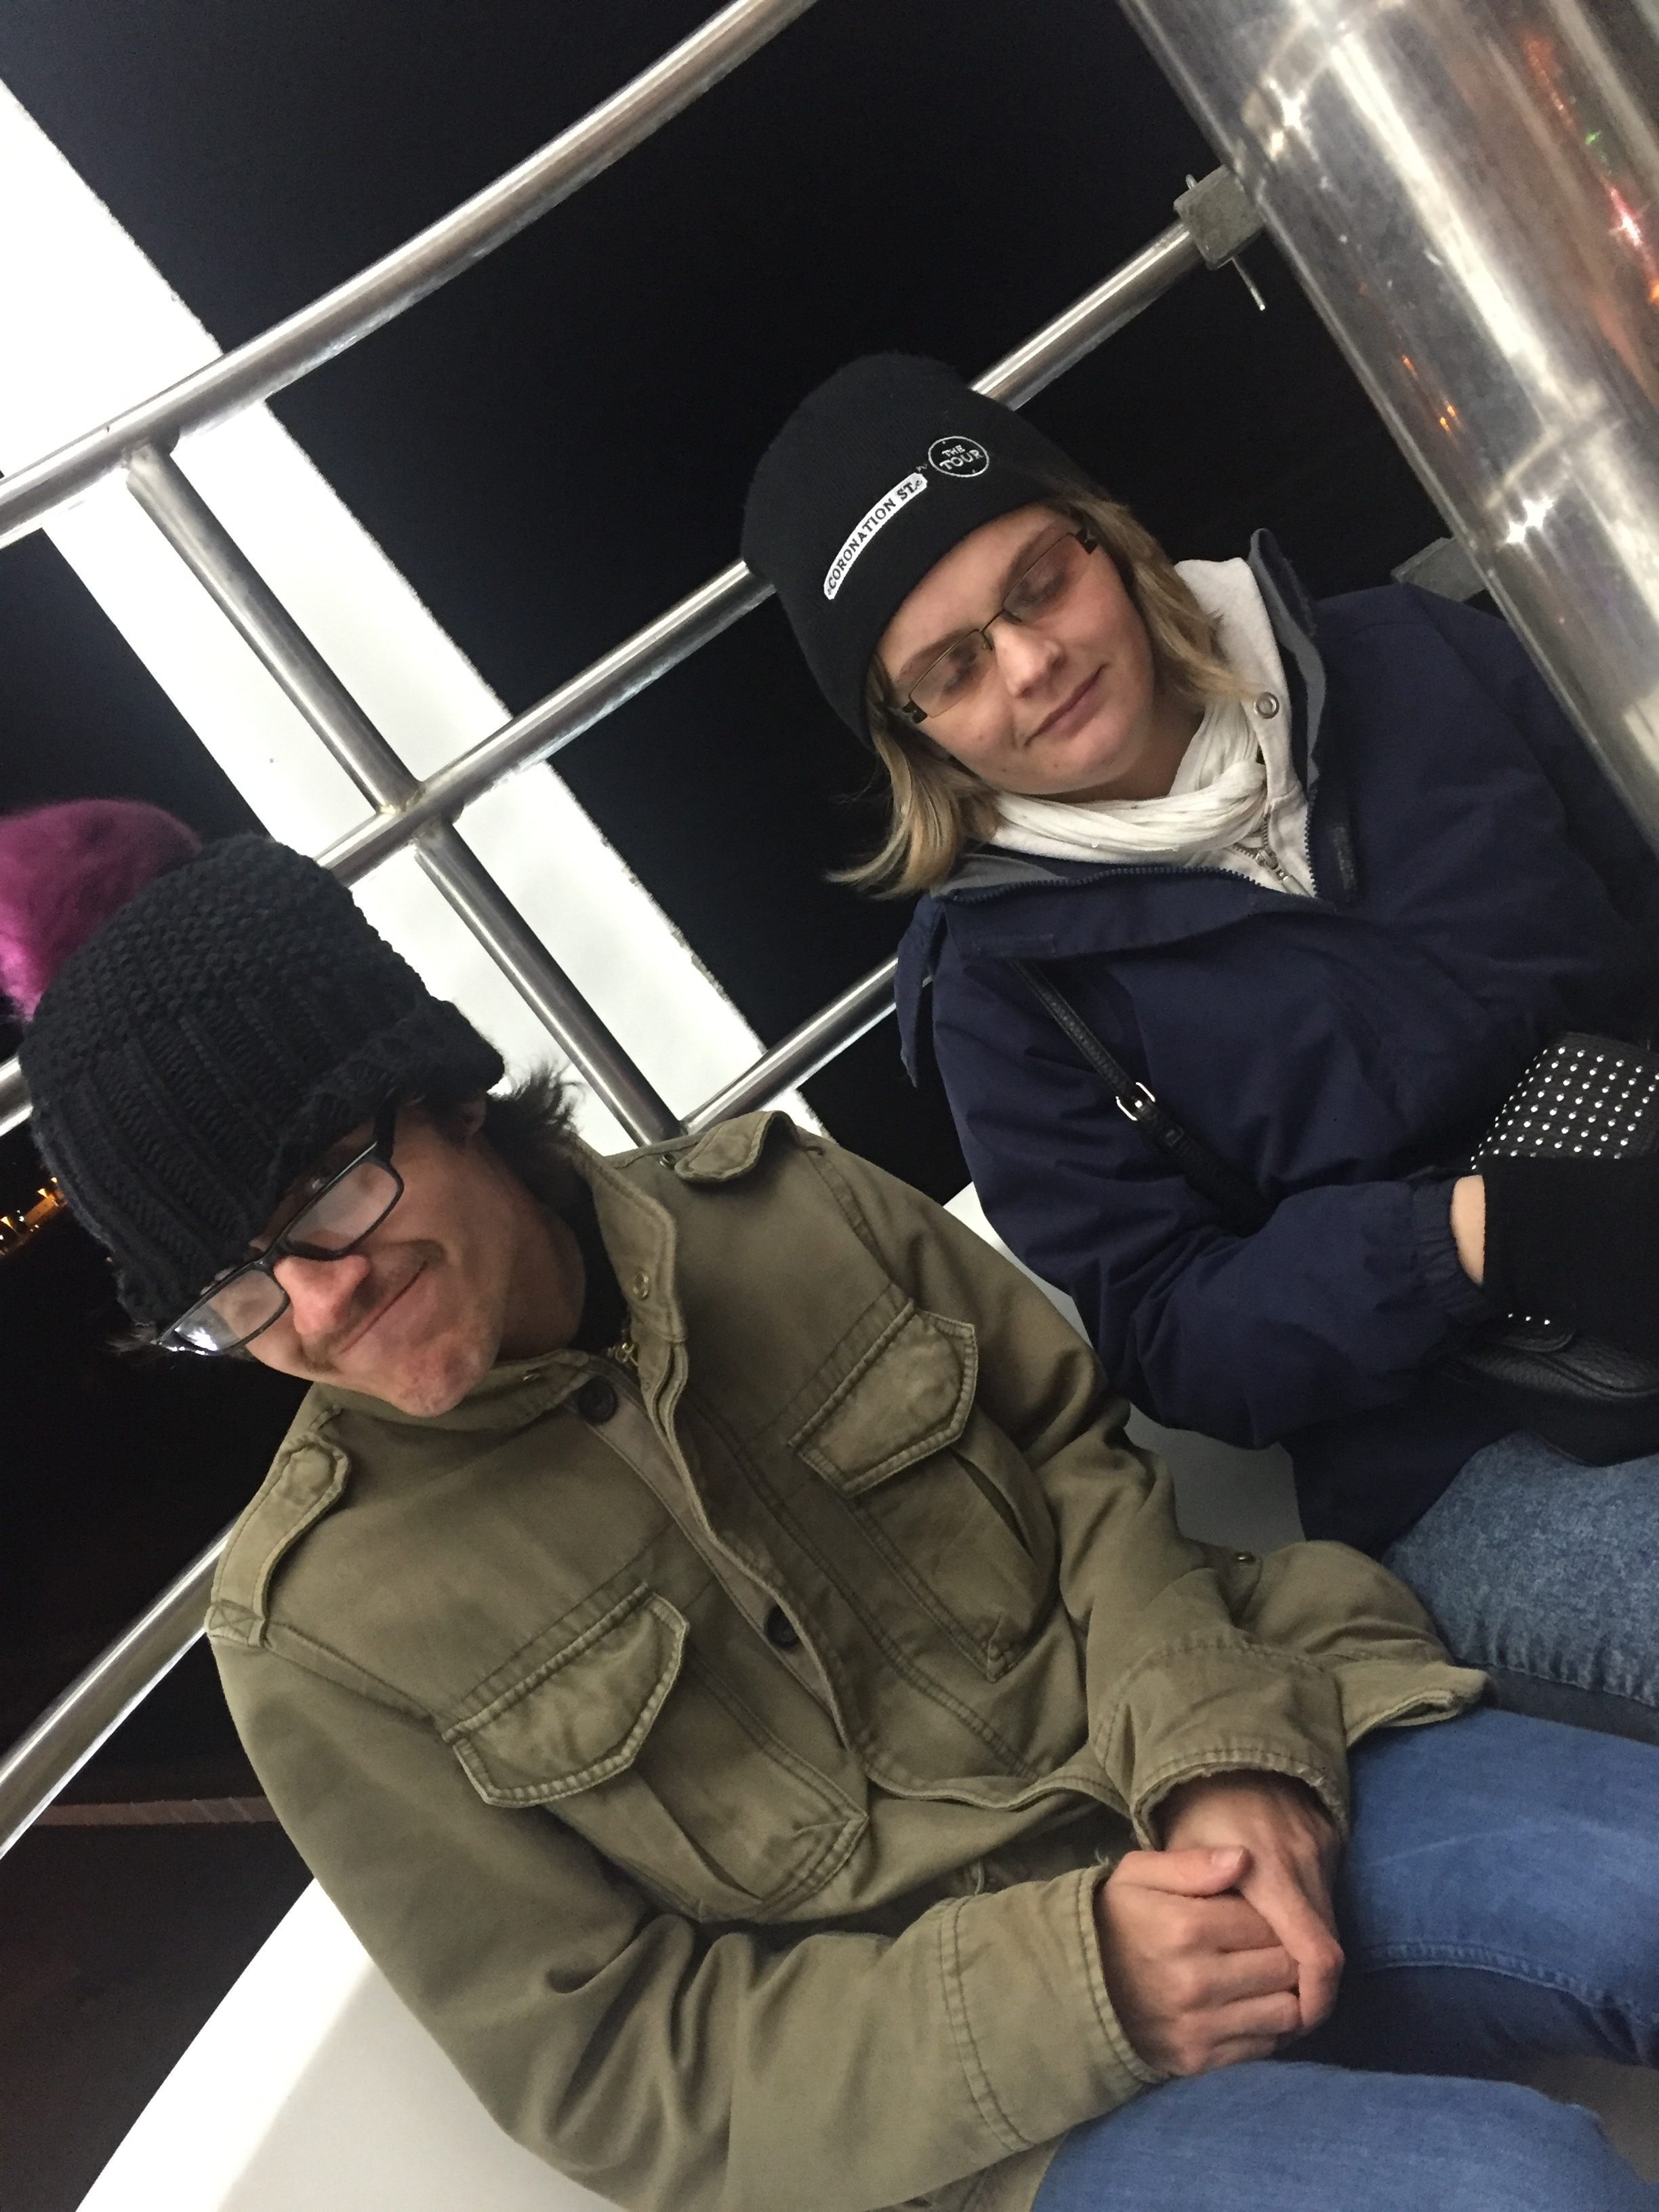 Josh and Clare on the big wheel at the Sunderland lights